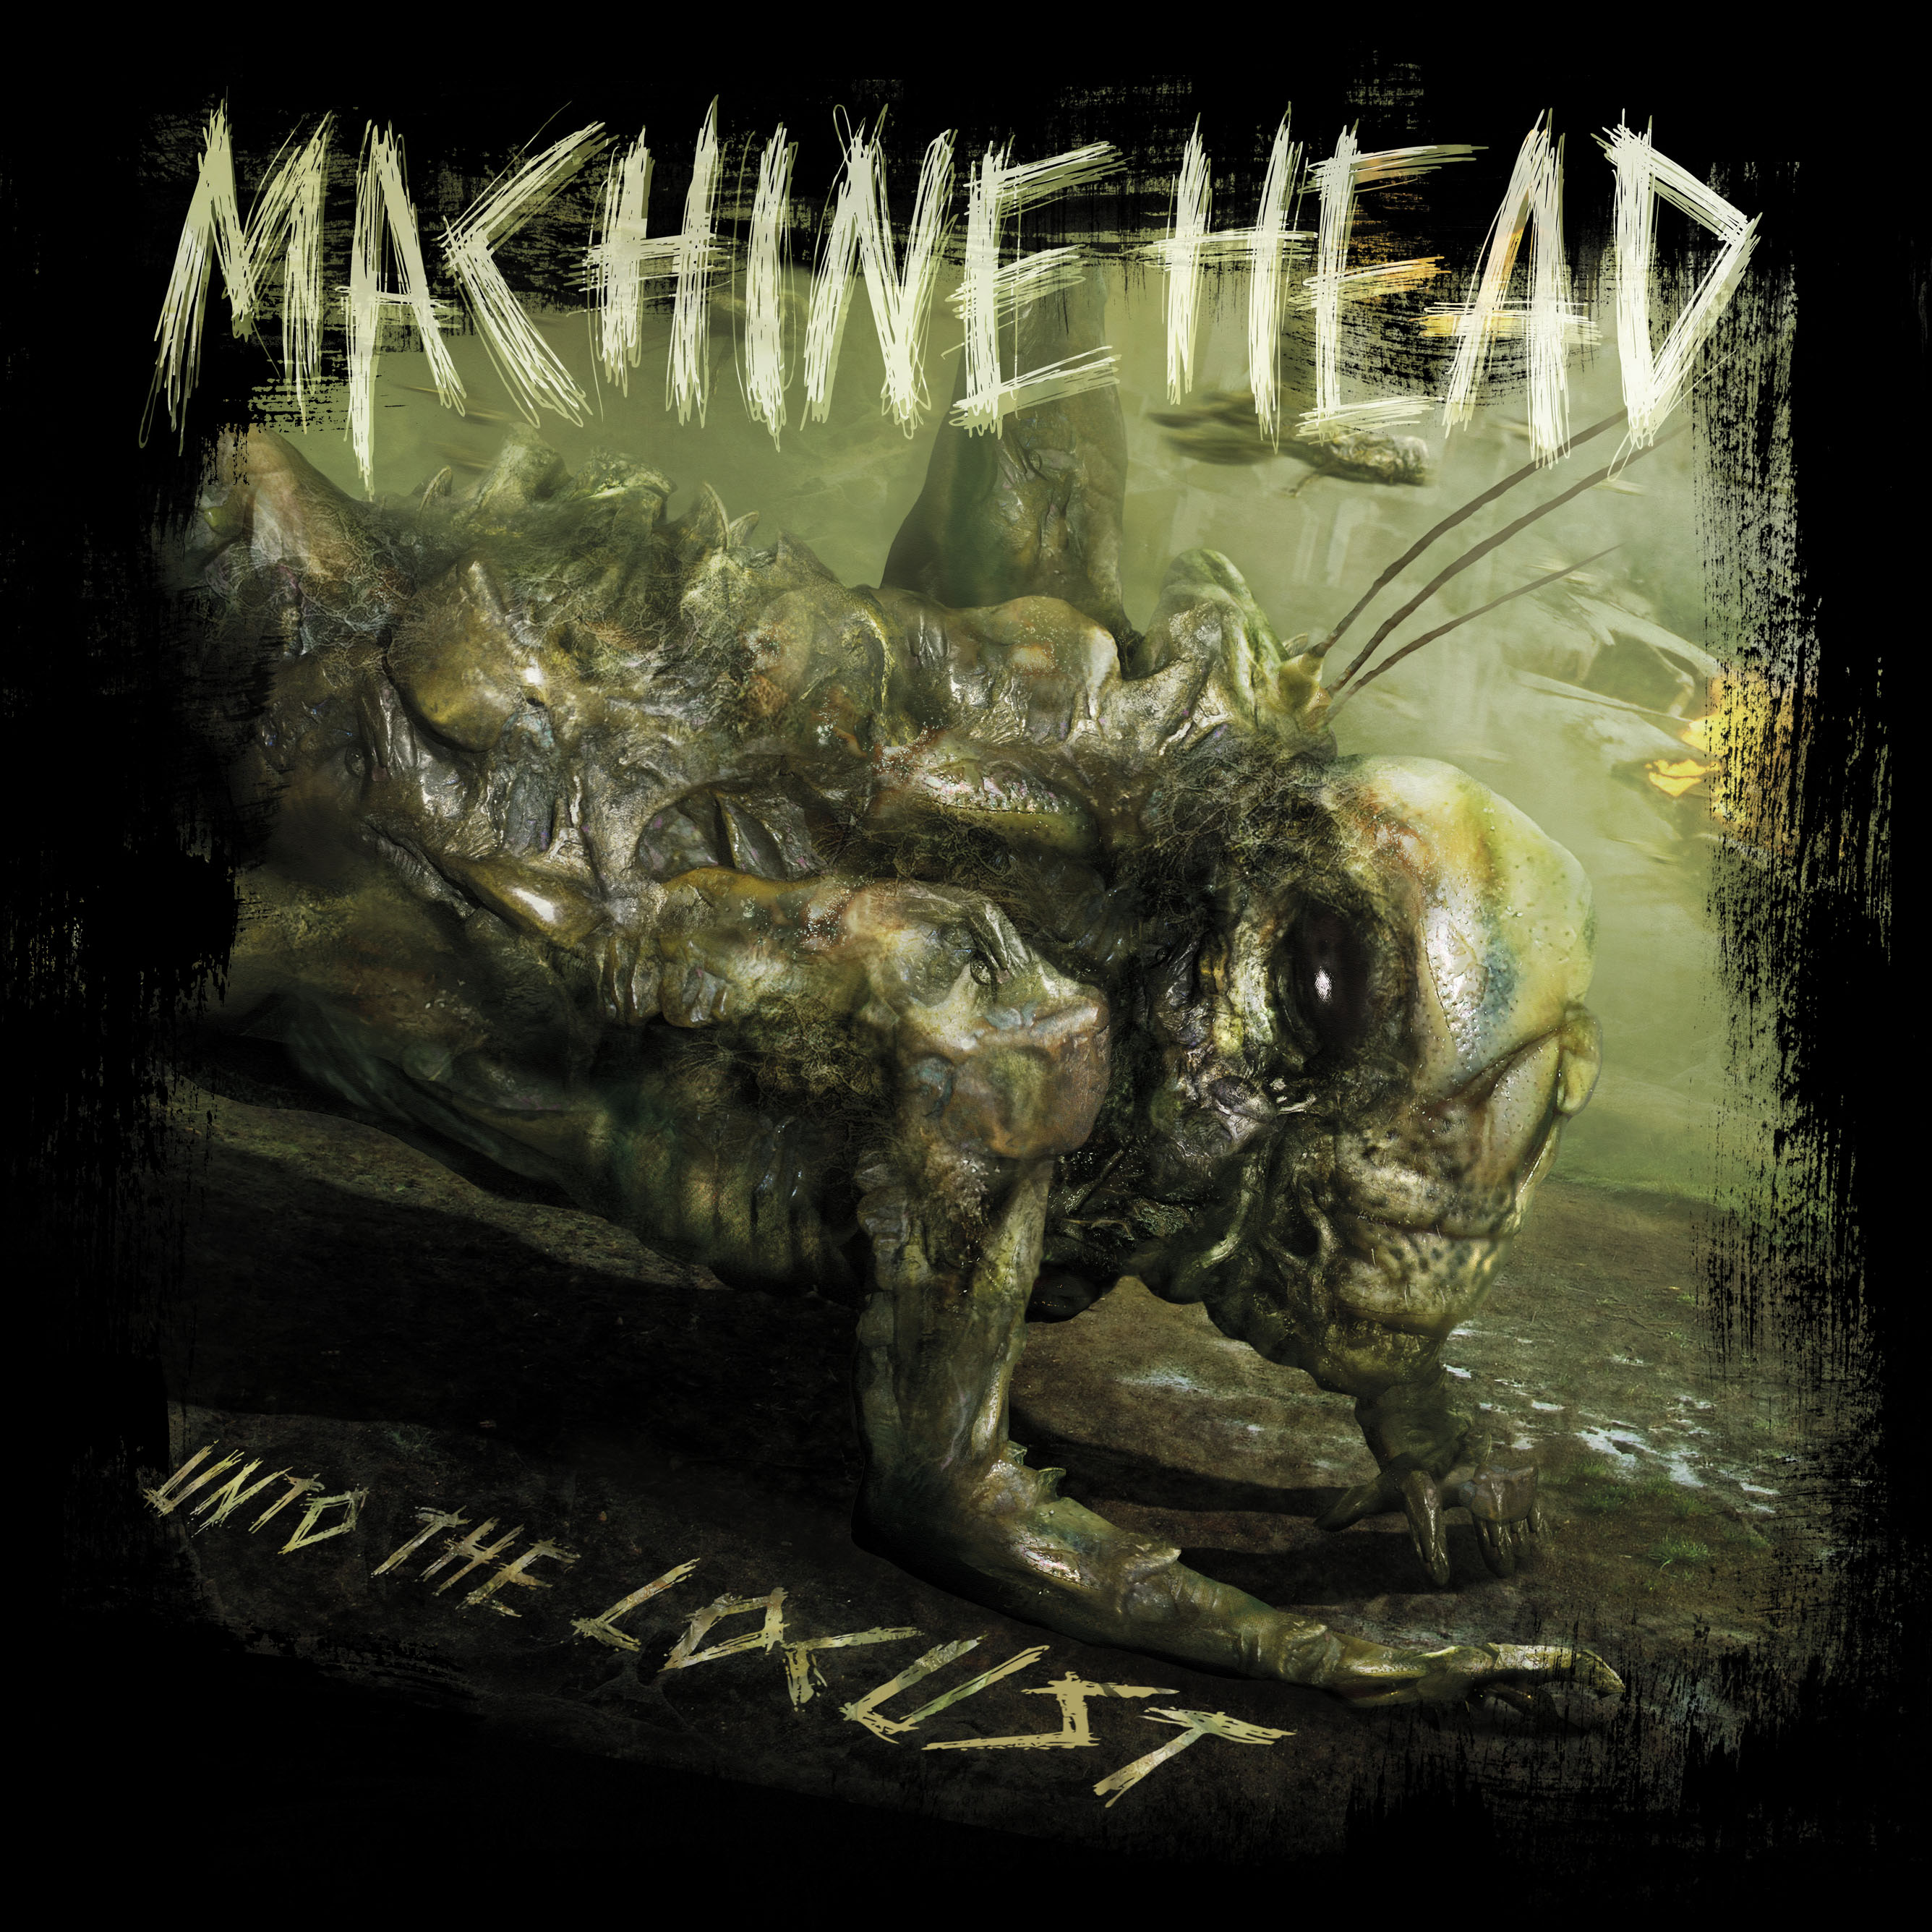 http://tanakamusic.com/wp-content/uploads/2011/09/machine-head-unto-the-locust.jpg